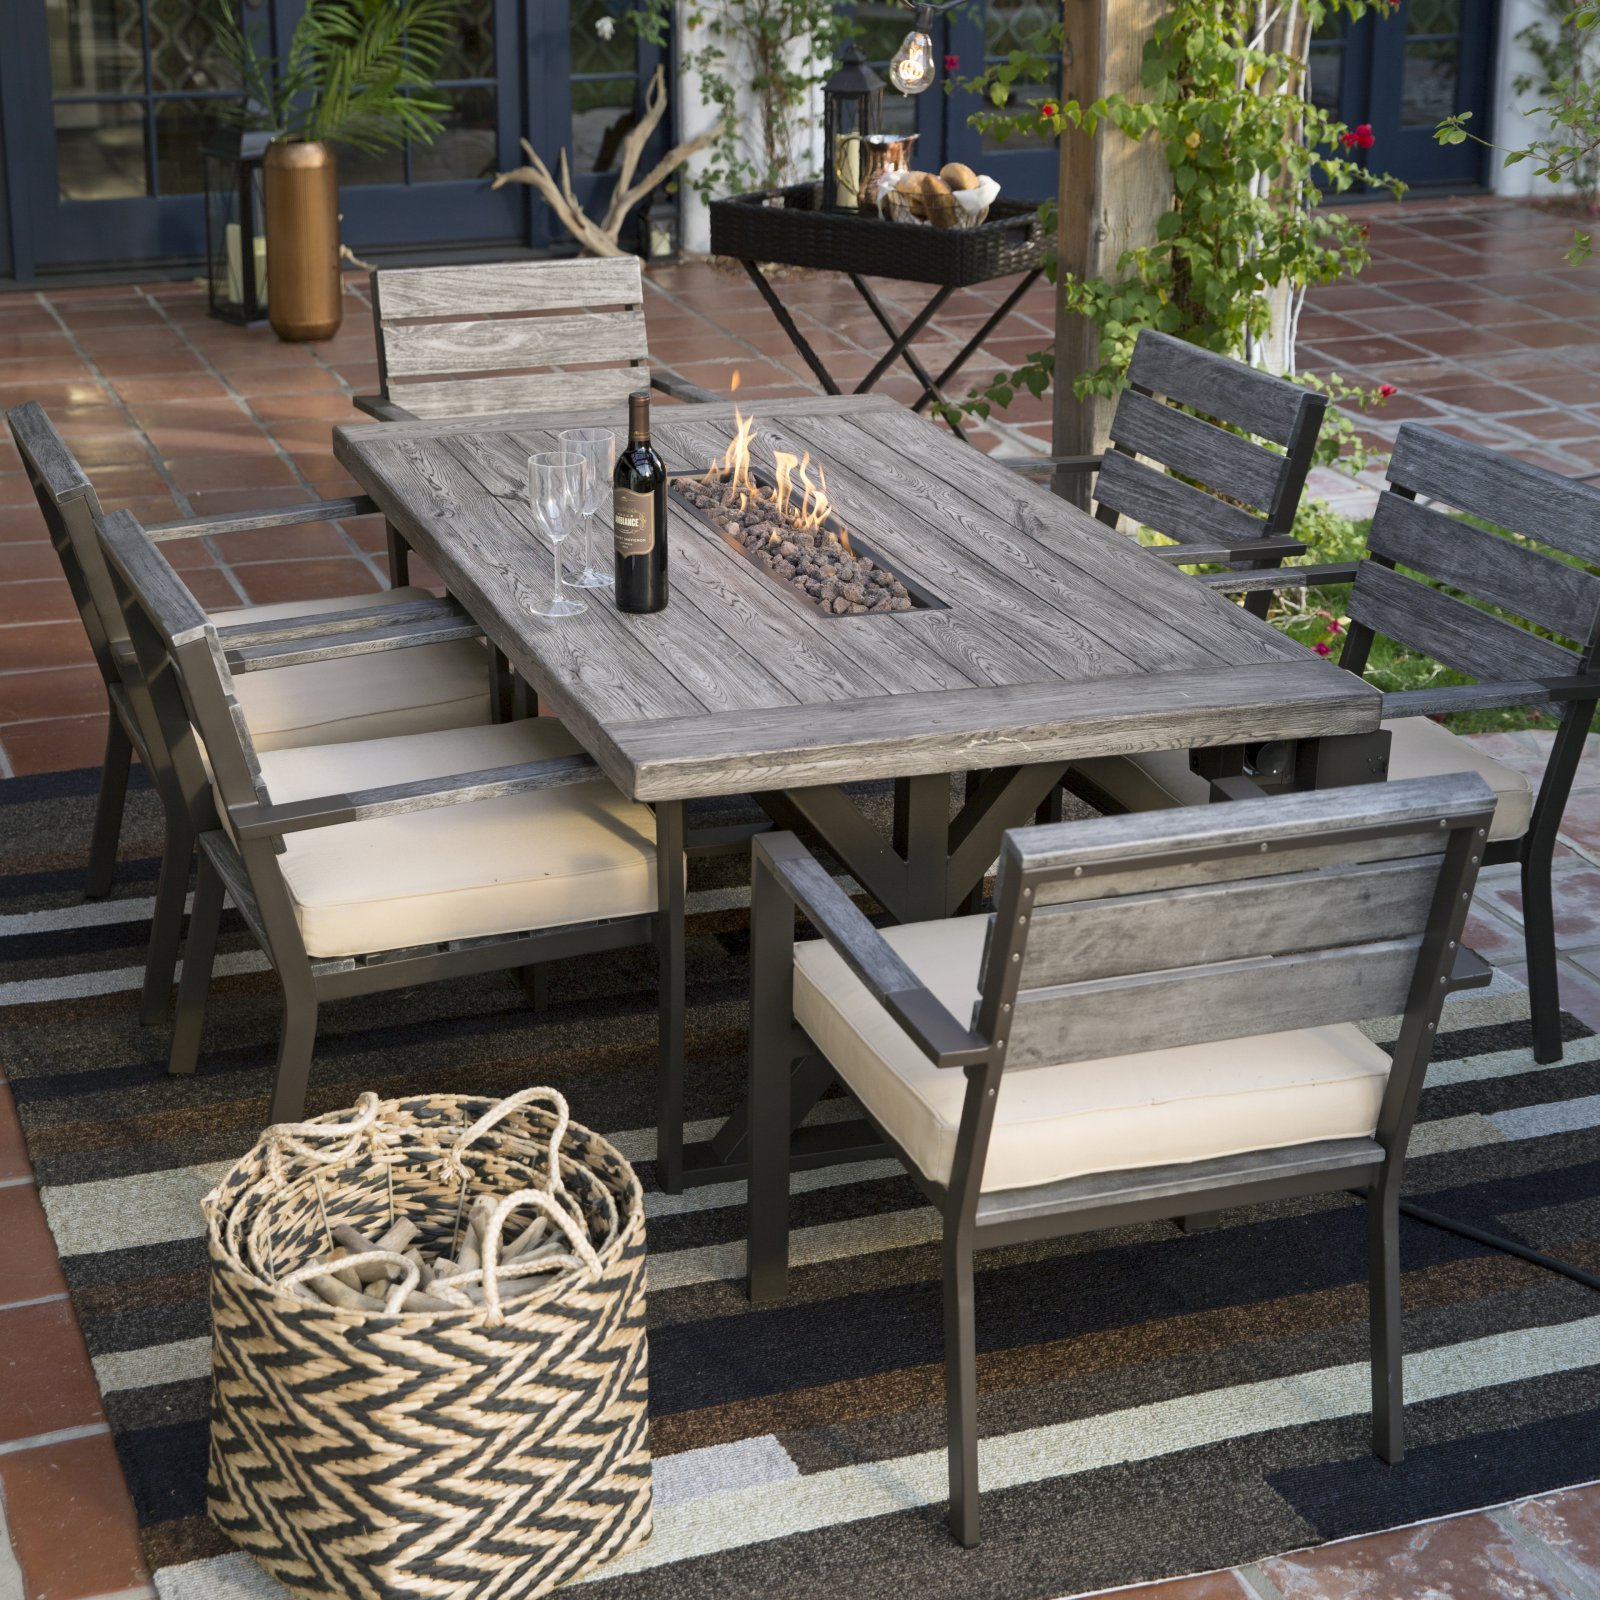 patio table with fire pit in middle house architecture design rh qk qobhk tu tislu tititoys store